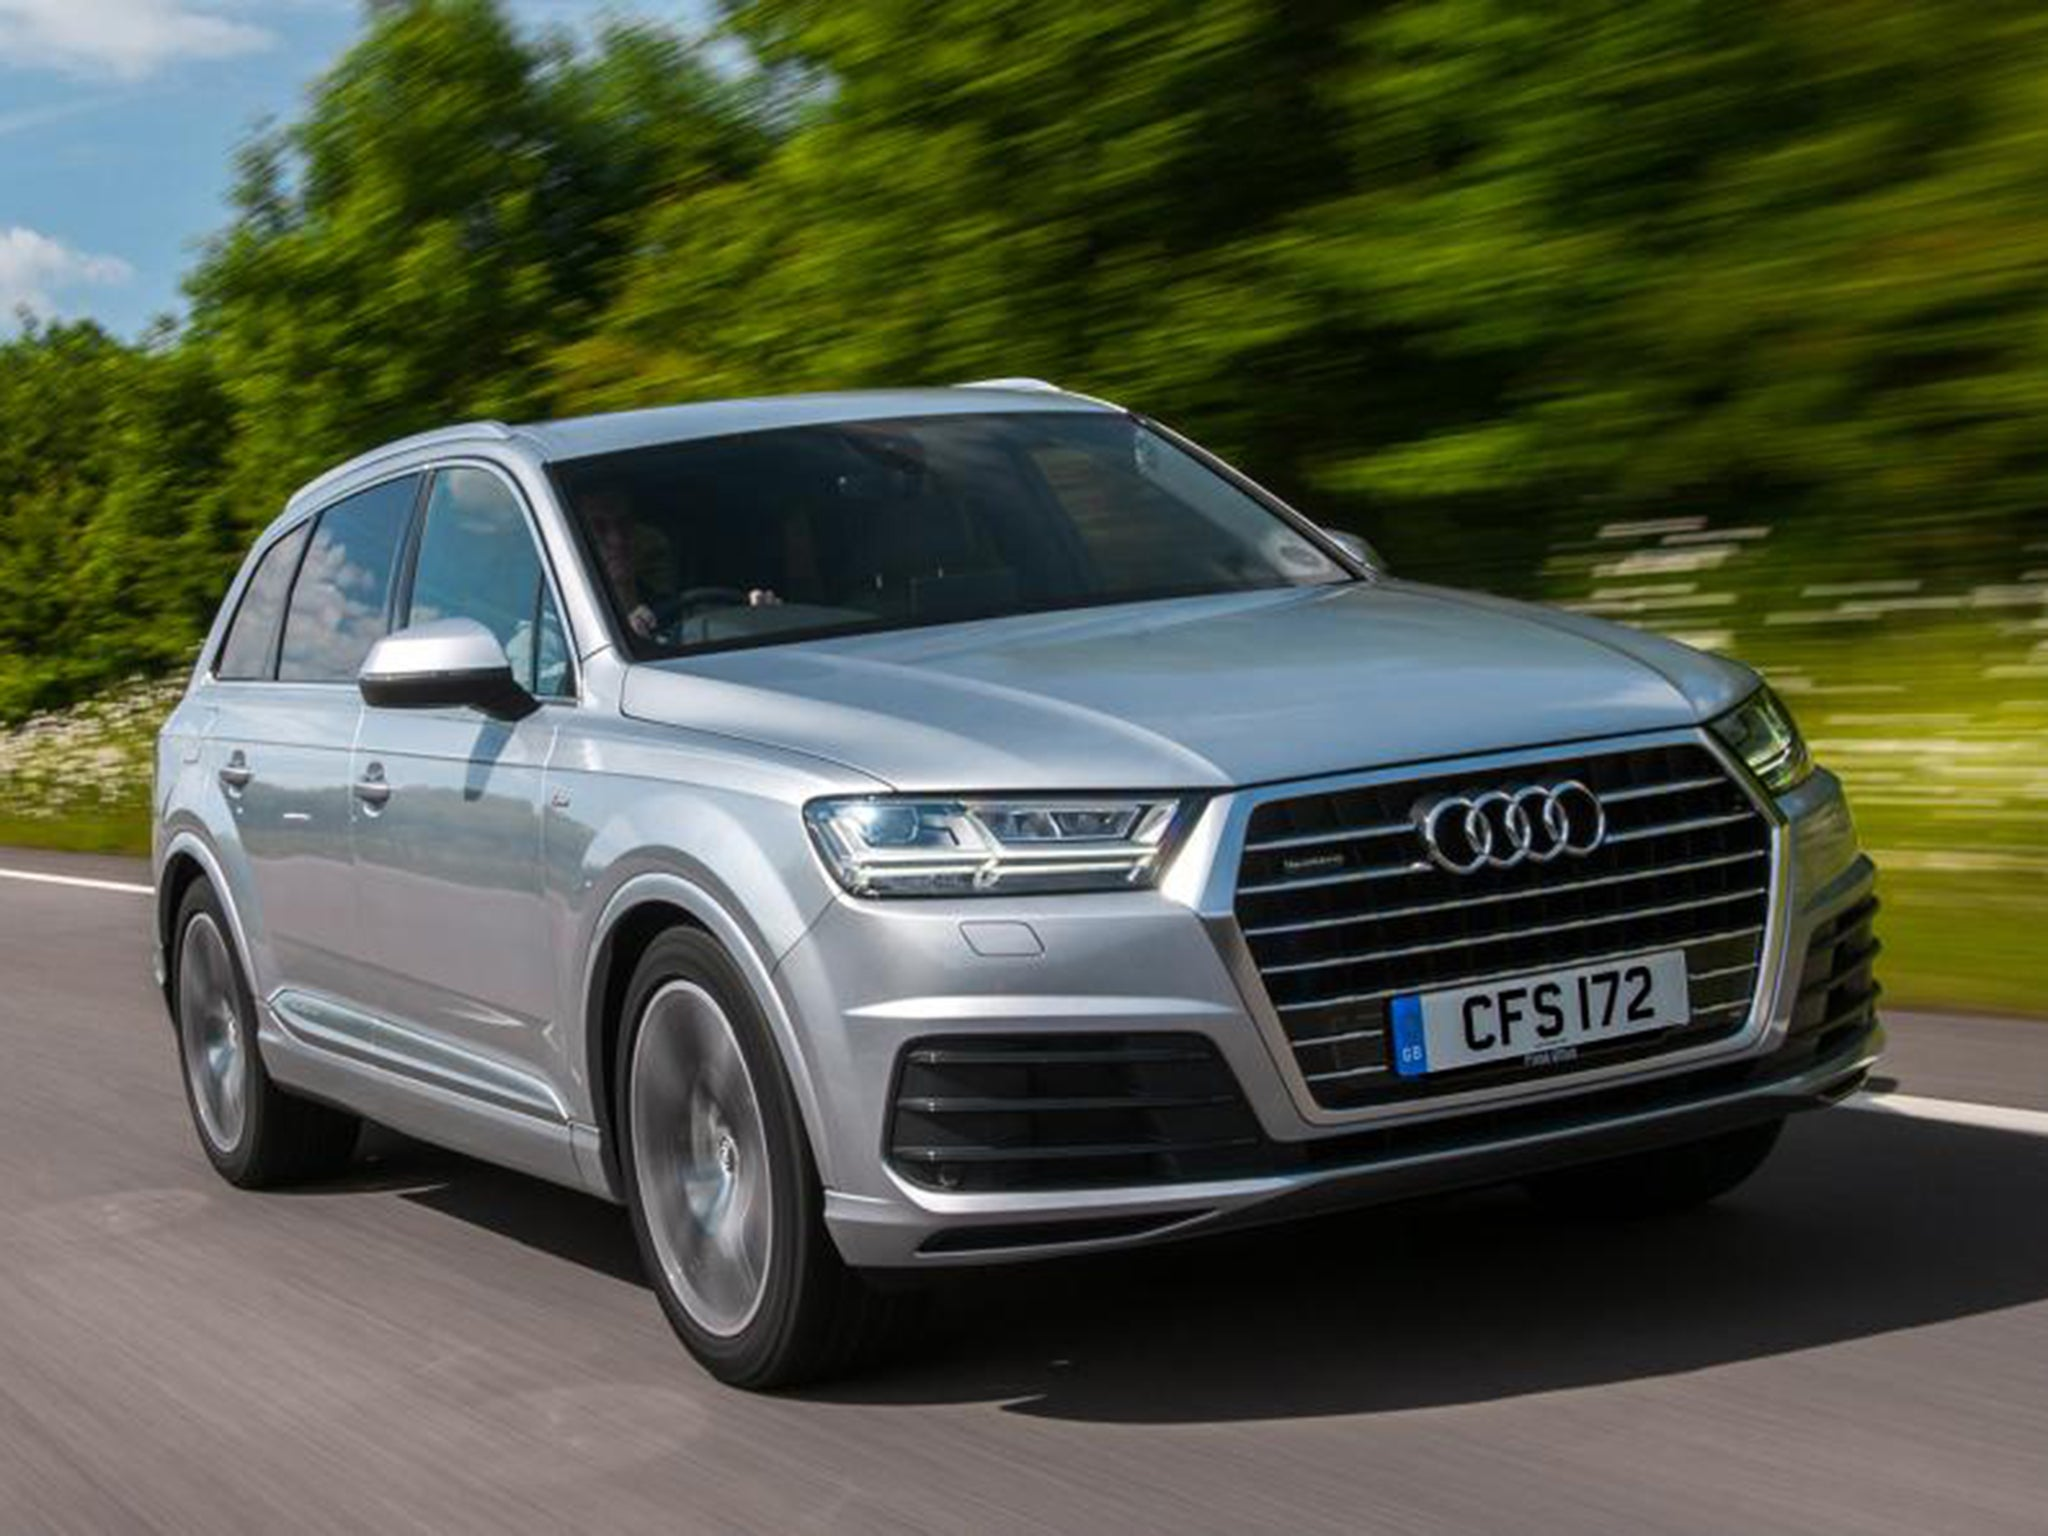 audi q7 3 0 tdi 218 car review mighty suv gets new entry level version road tests